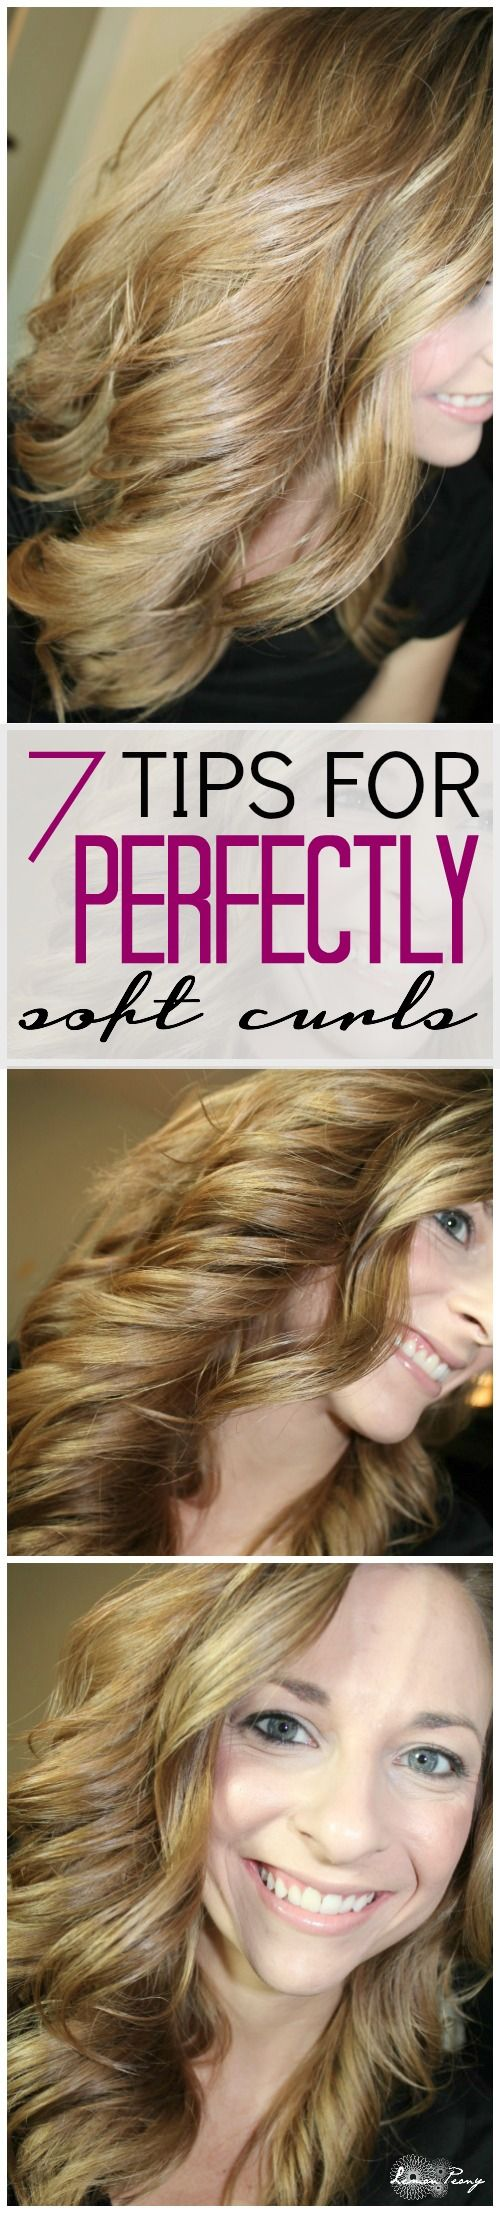 7 Hair Tips for Soft Curls #softcurls